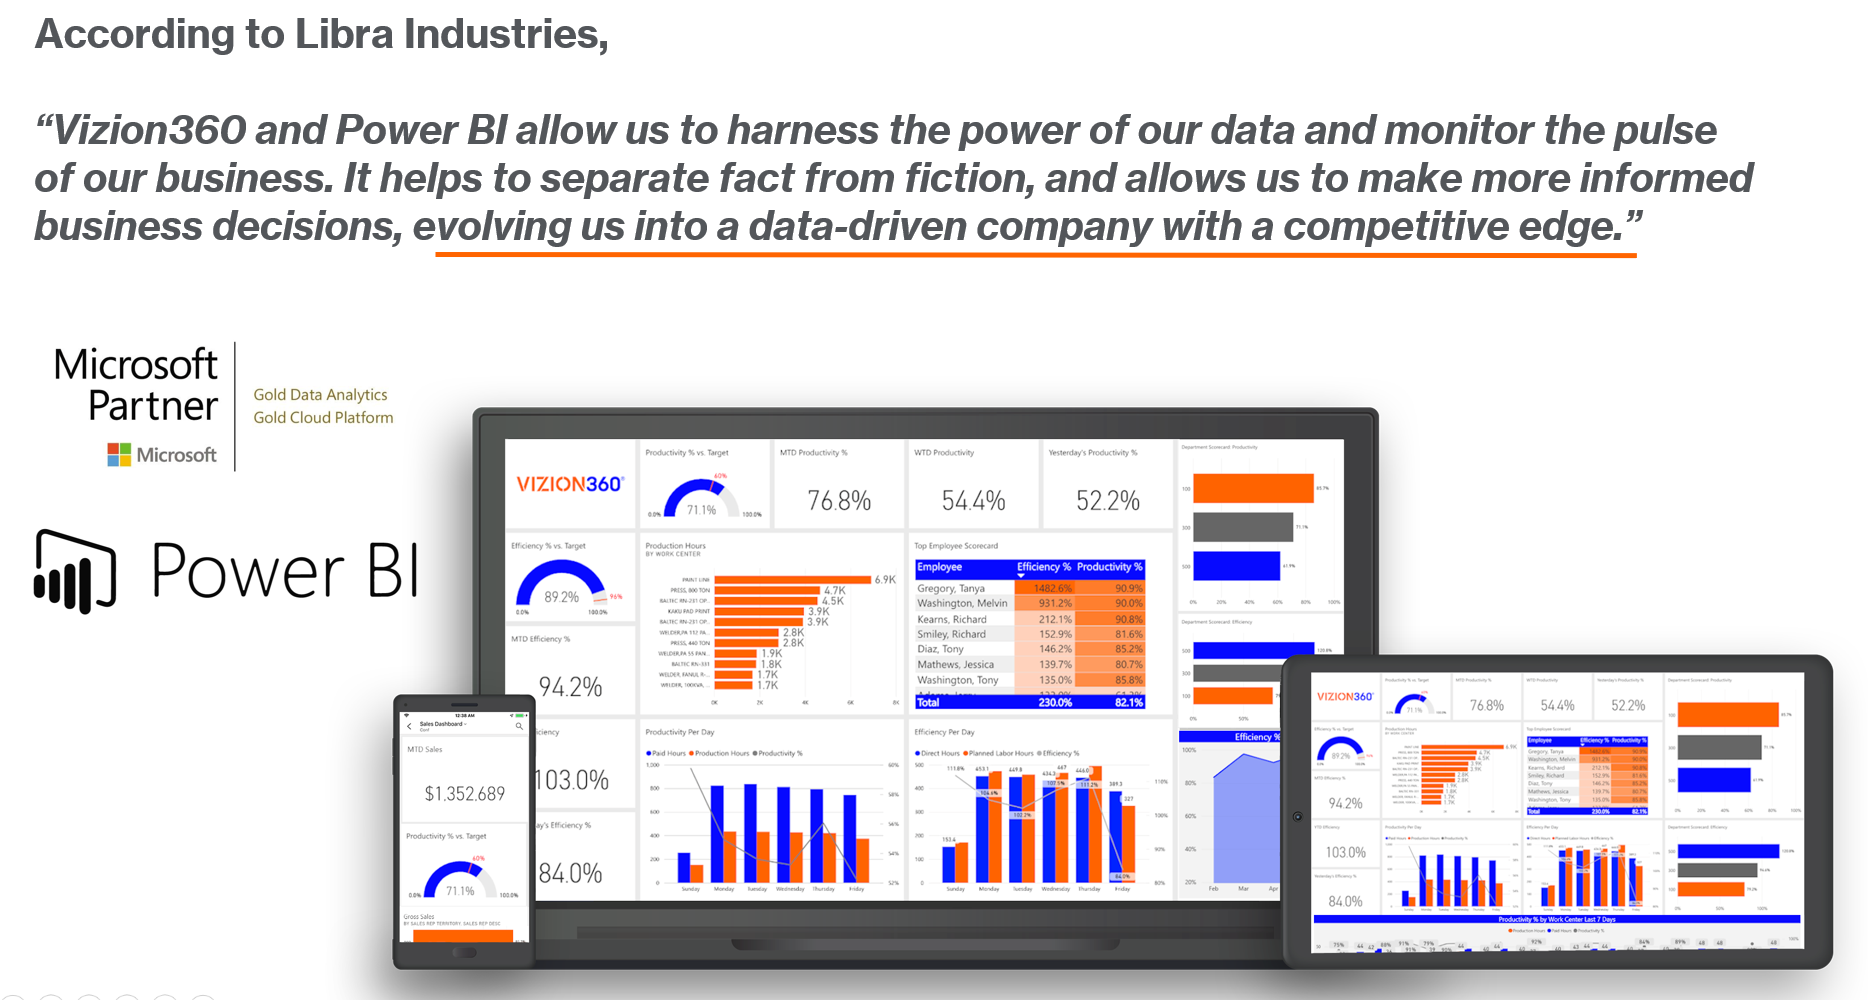 Harness the Power of Data Quote by Libra on Customized Power BI by Vizion360